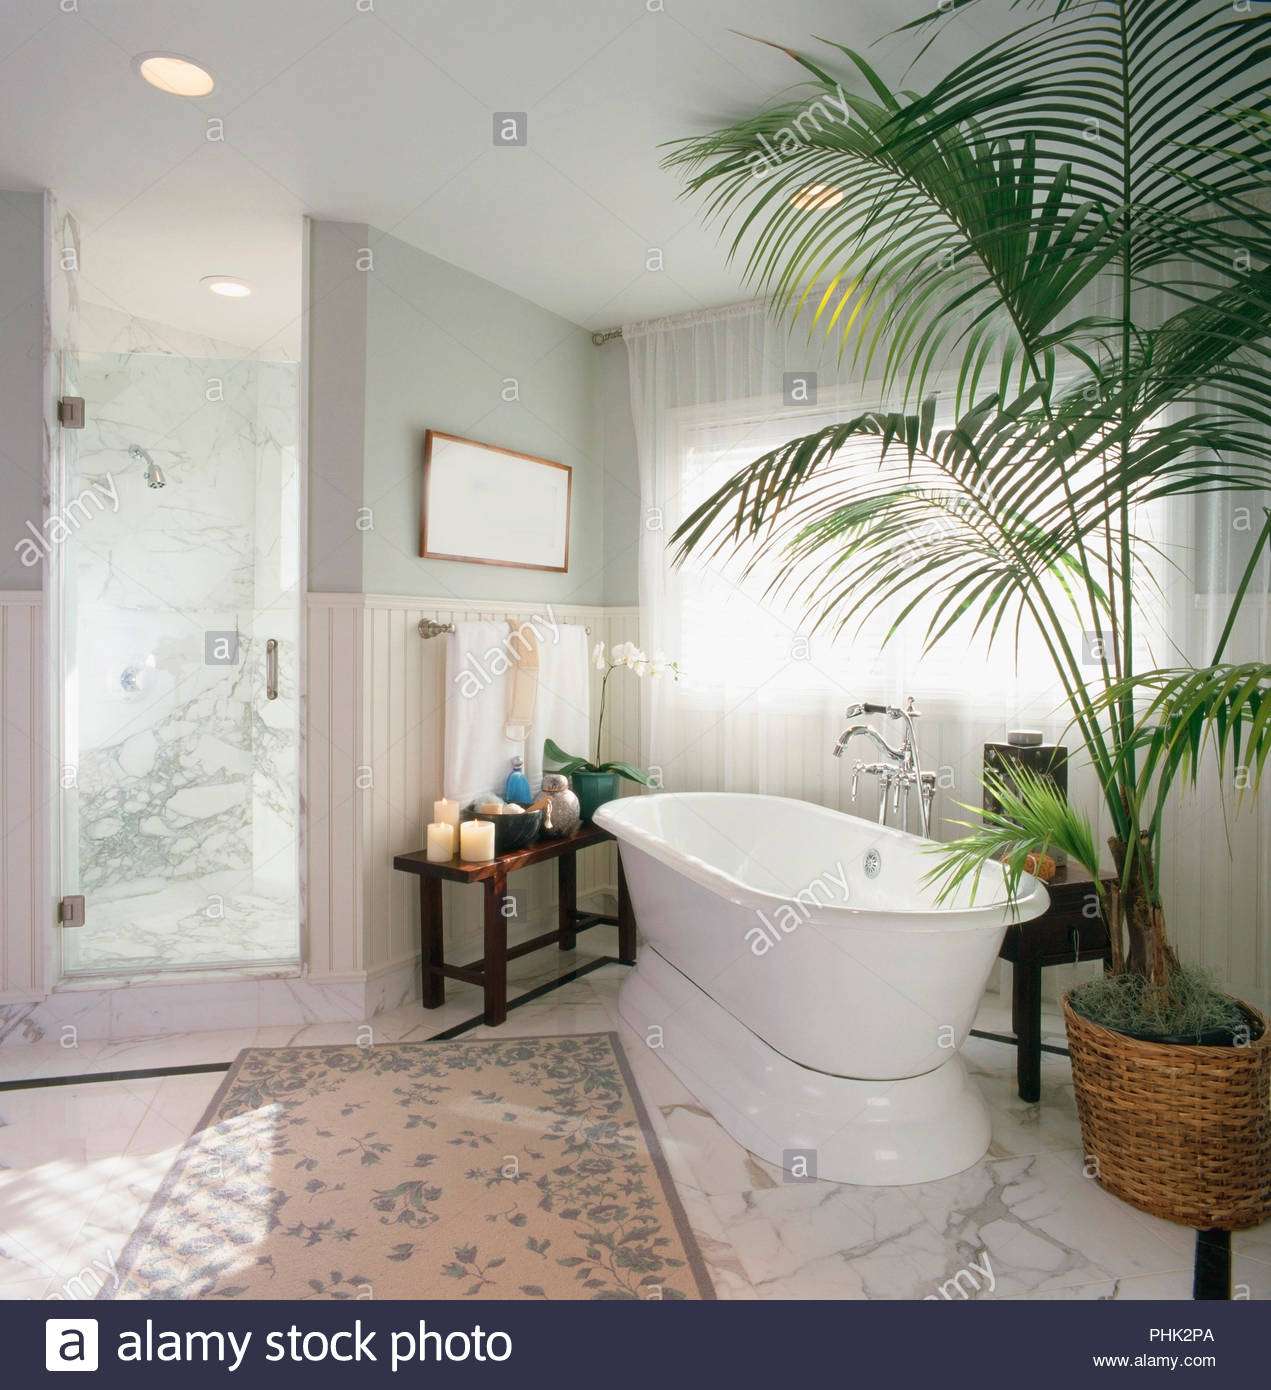 Bath and shower with potted plants - Stock Image